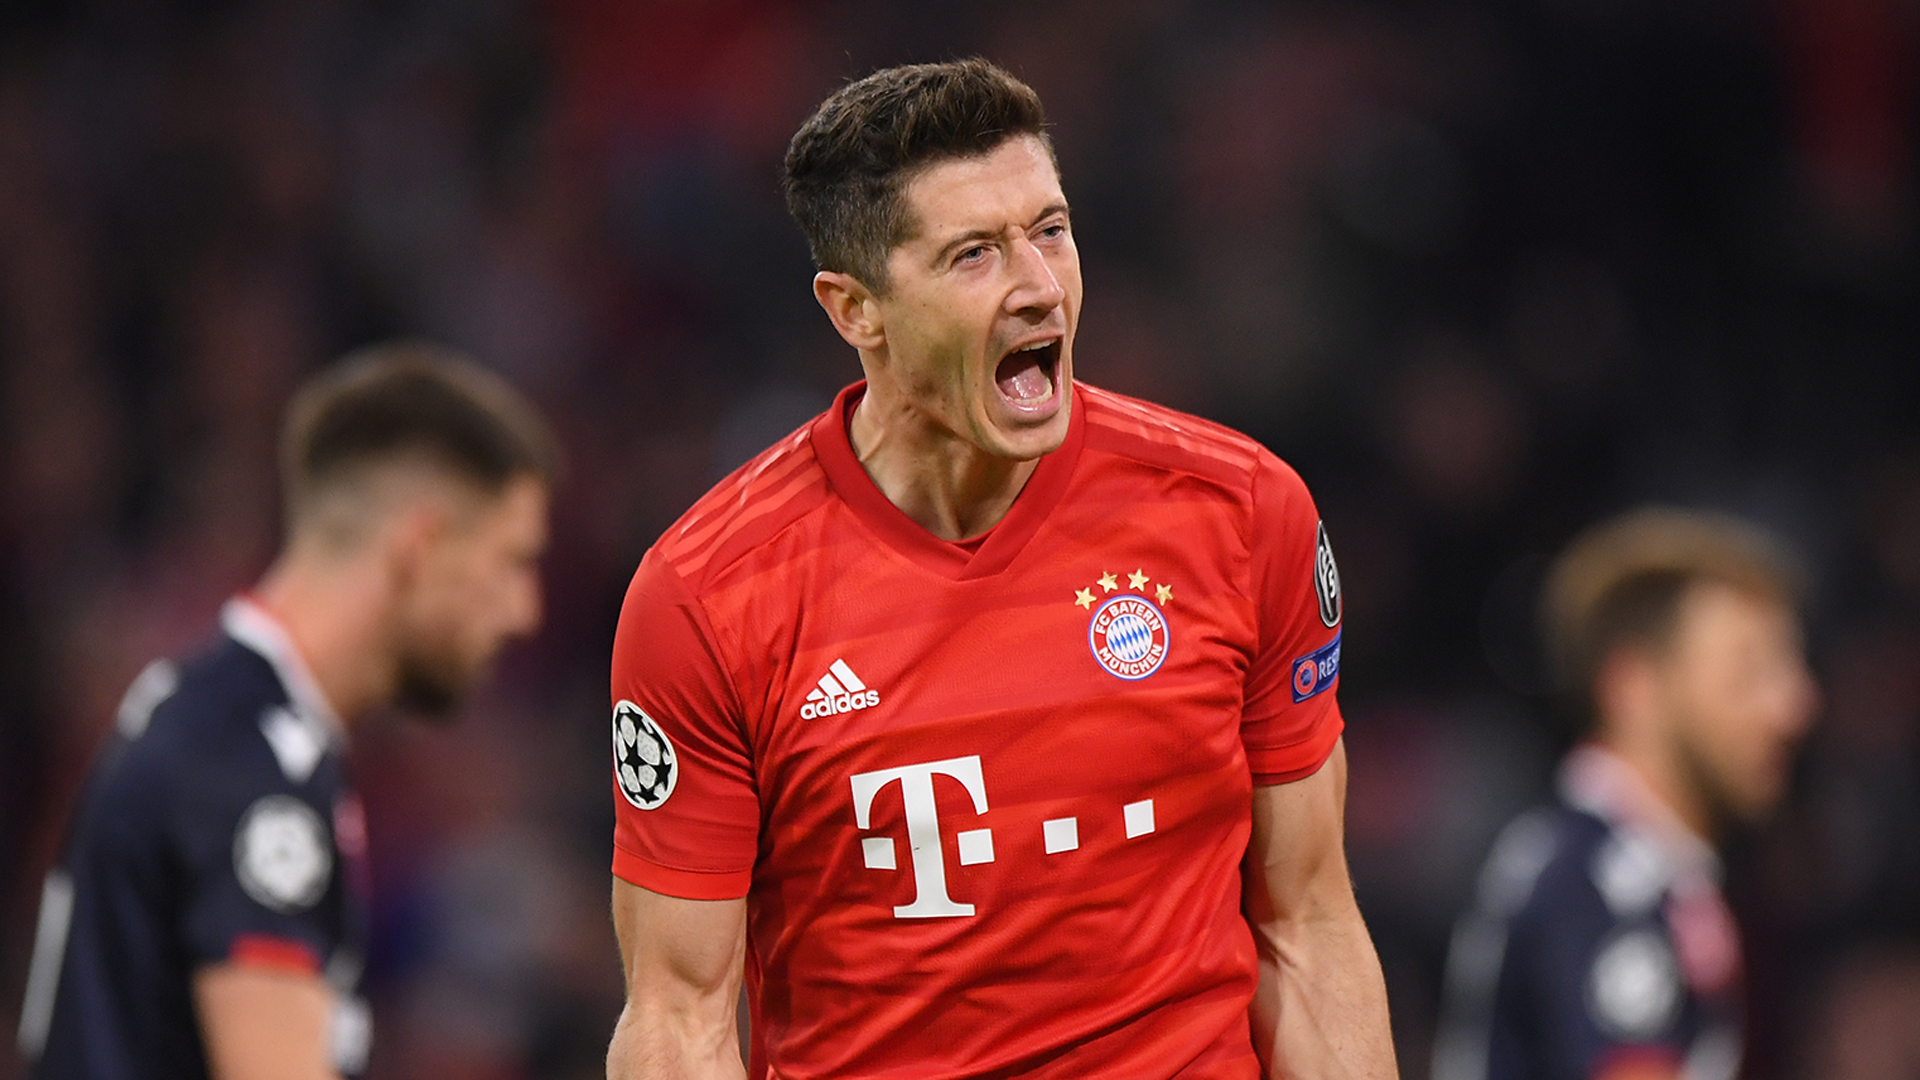 Robert Lewandowski Bayern Champions League 2019-20